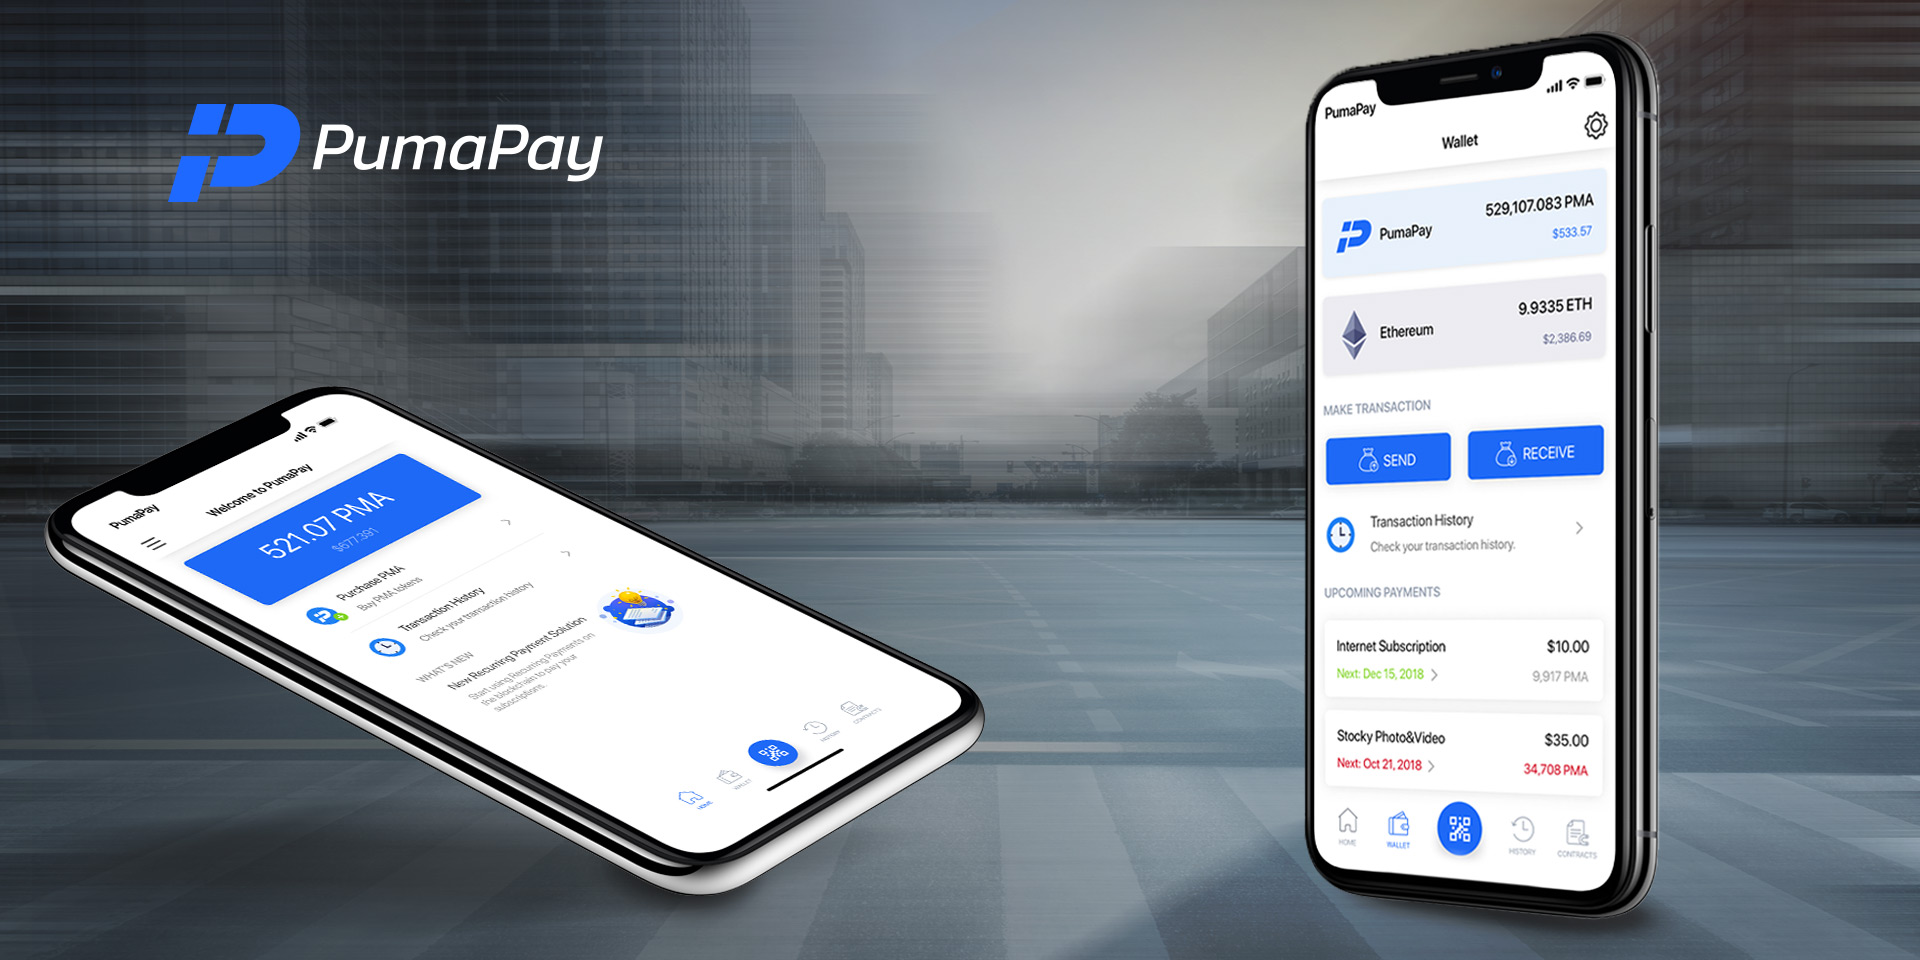 PumaPay Wallet Latest Update: Crypto-to-Crypto Conversion